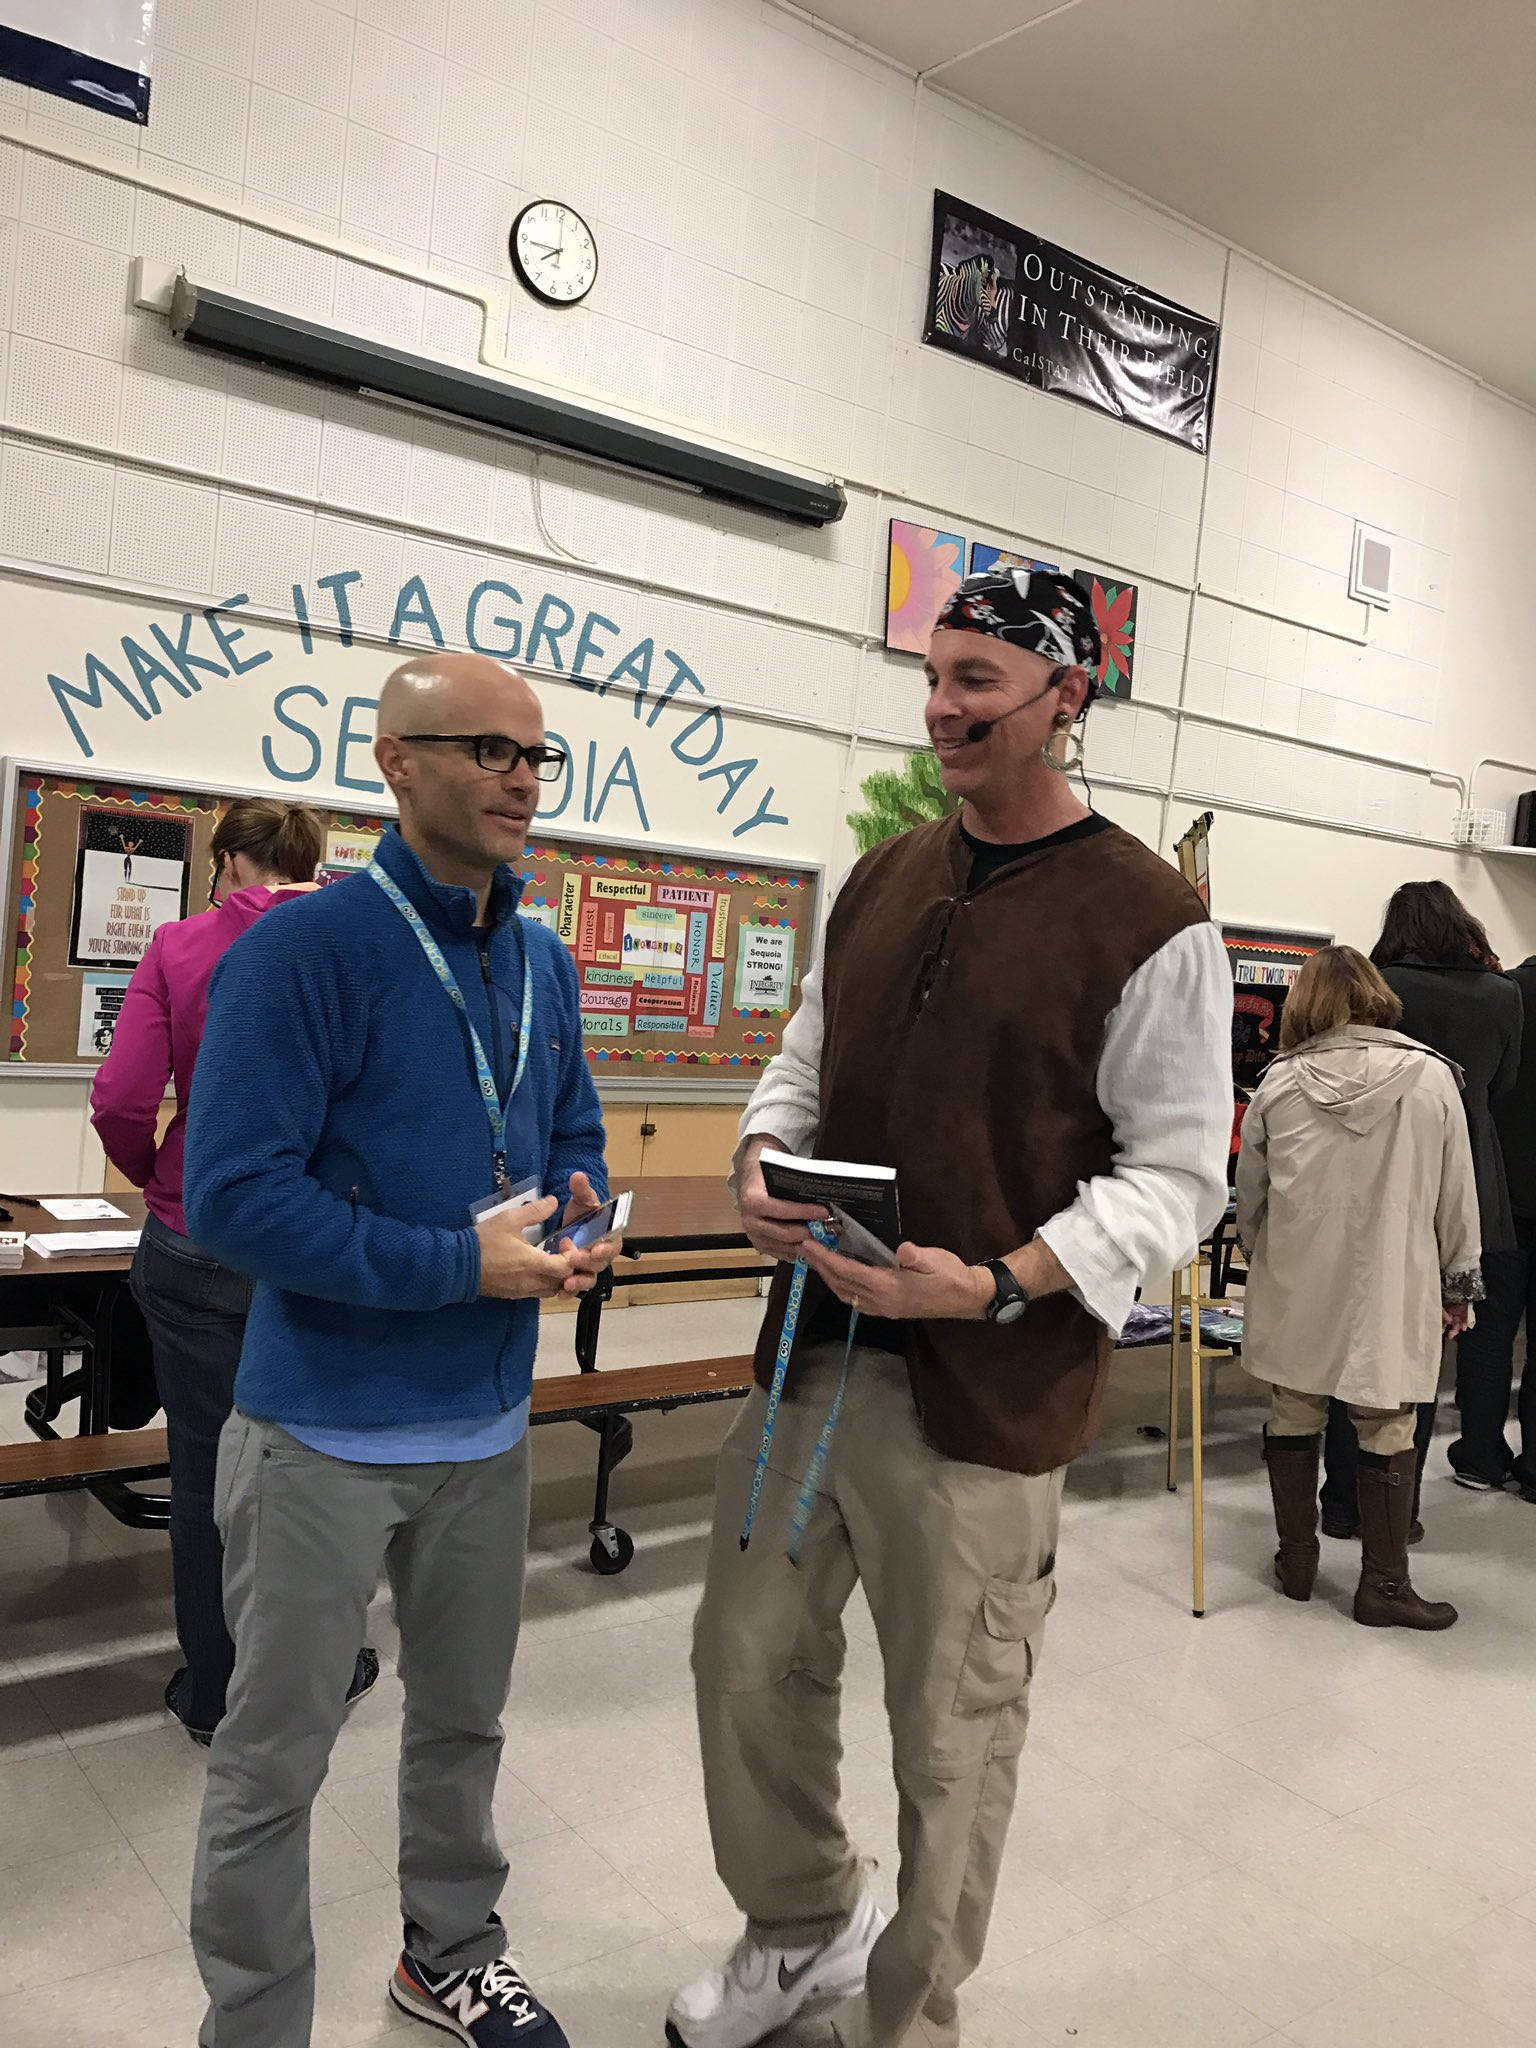 The man @burgessdave getting ready to share eduawesome teaching techniques catching up with @awelcome #edcampcoco #tlap https://t.co/GWSqIAwNPP